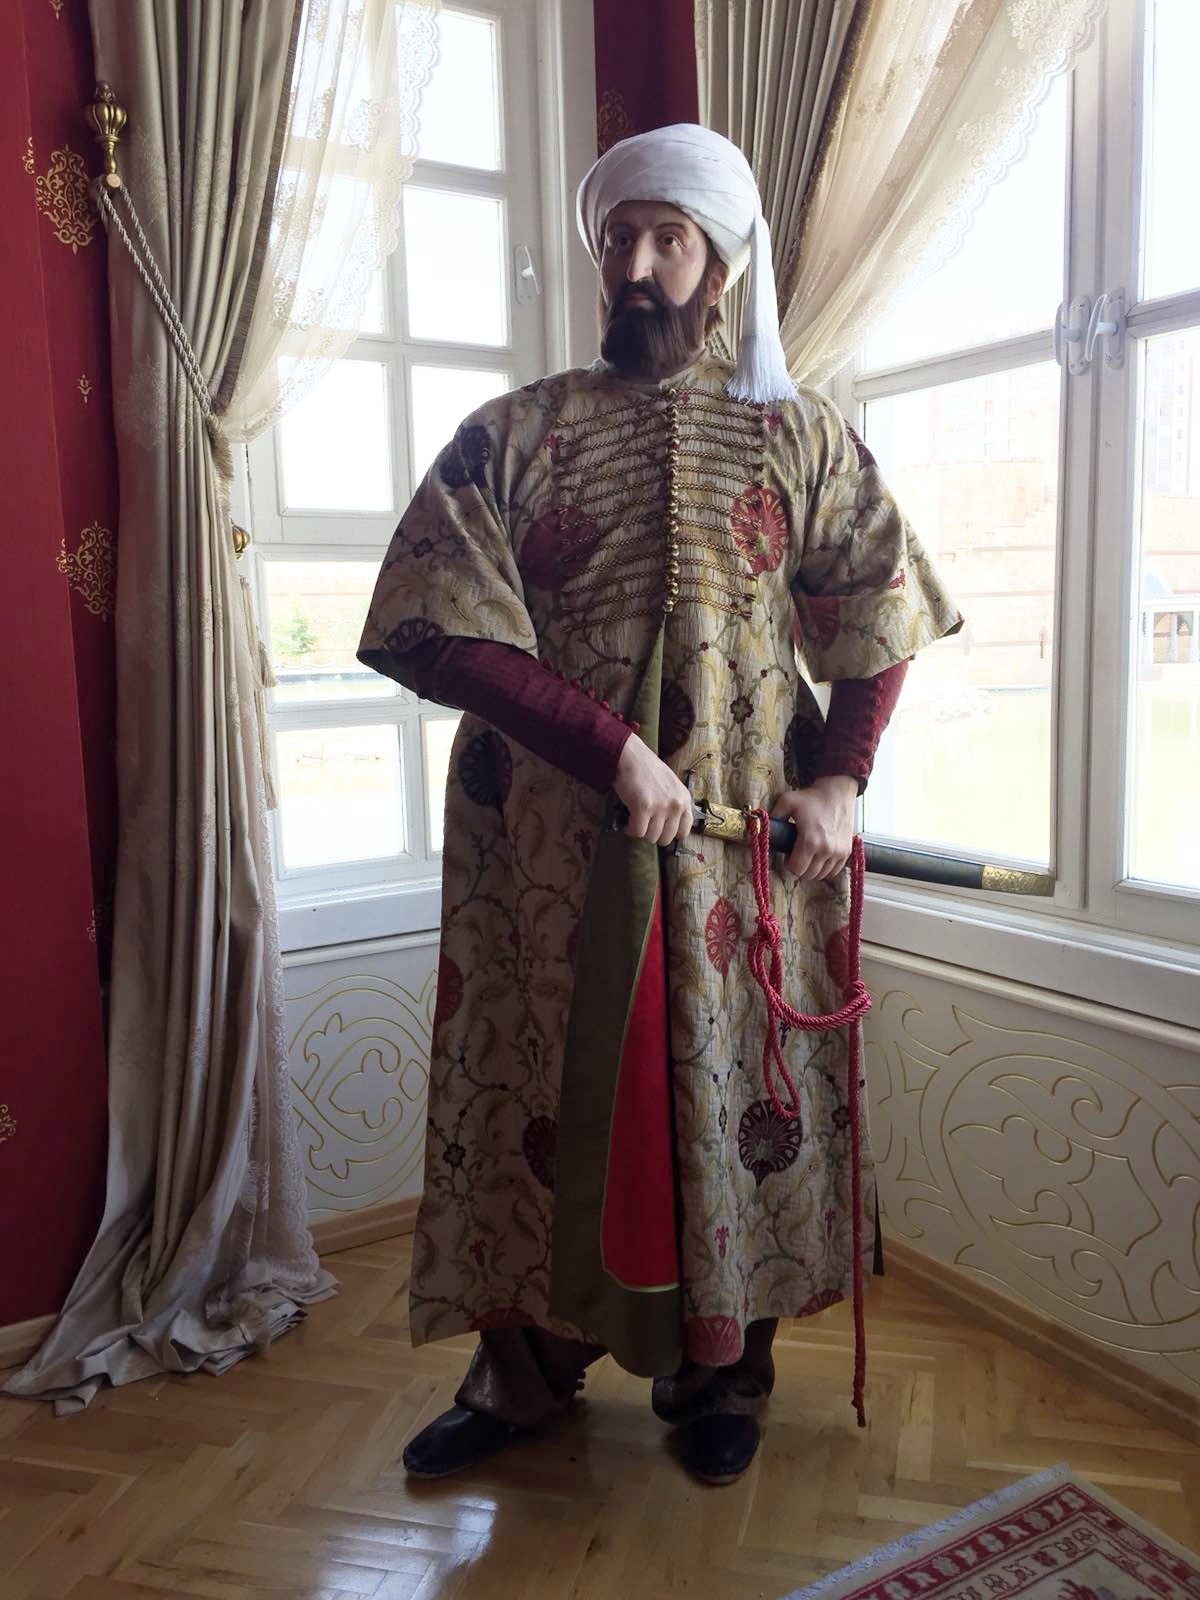 The garment of Sultan Mehmed the Conqueror is one of the very first samples of the precious collection.